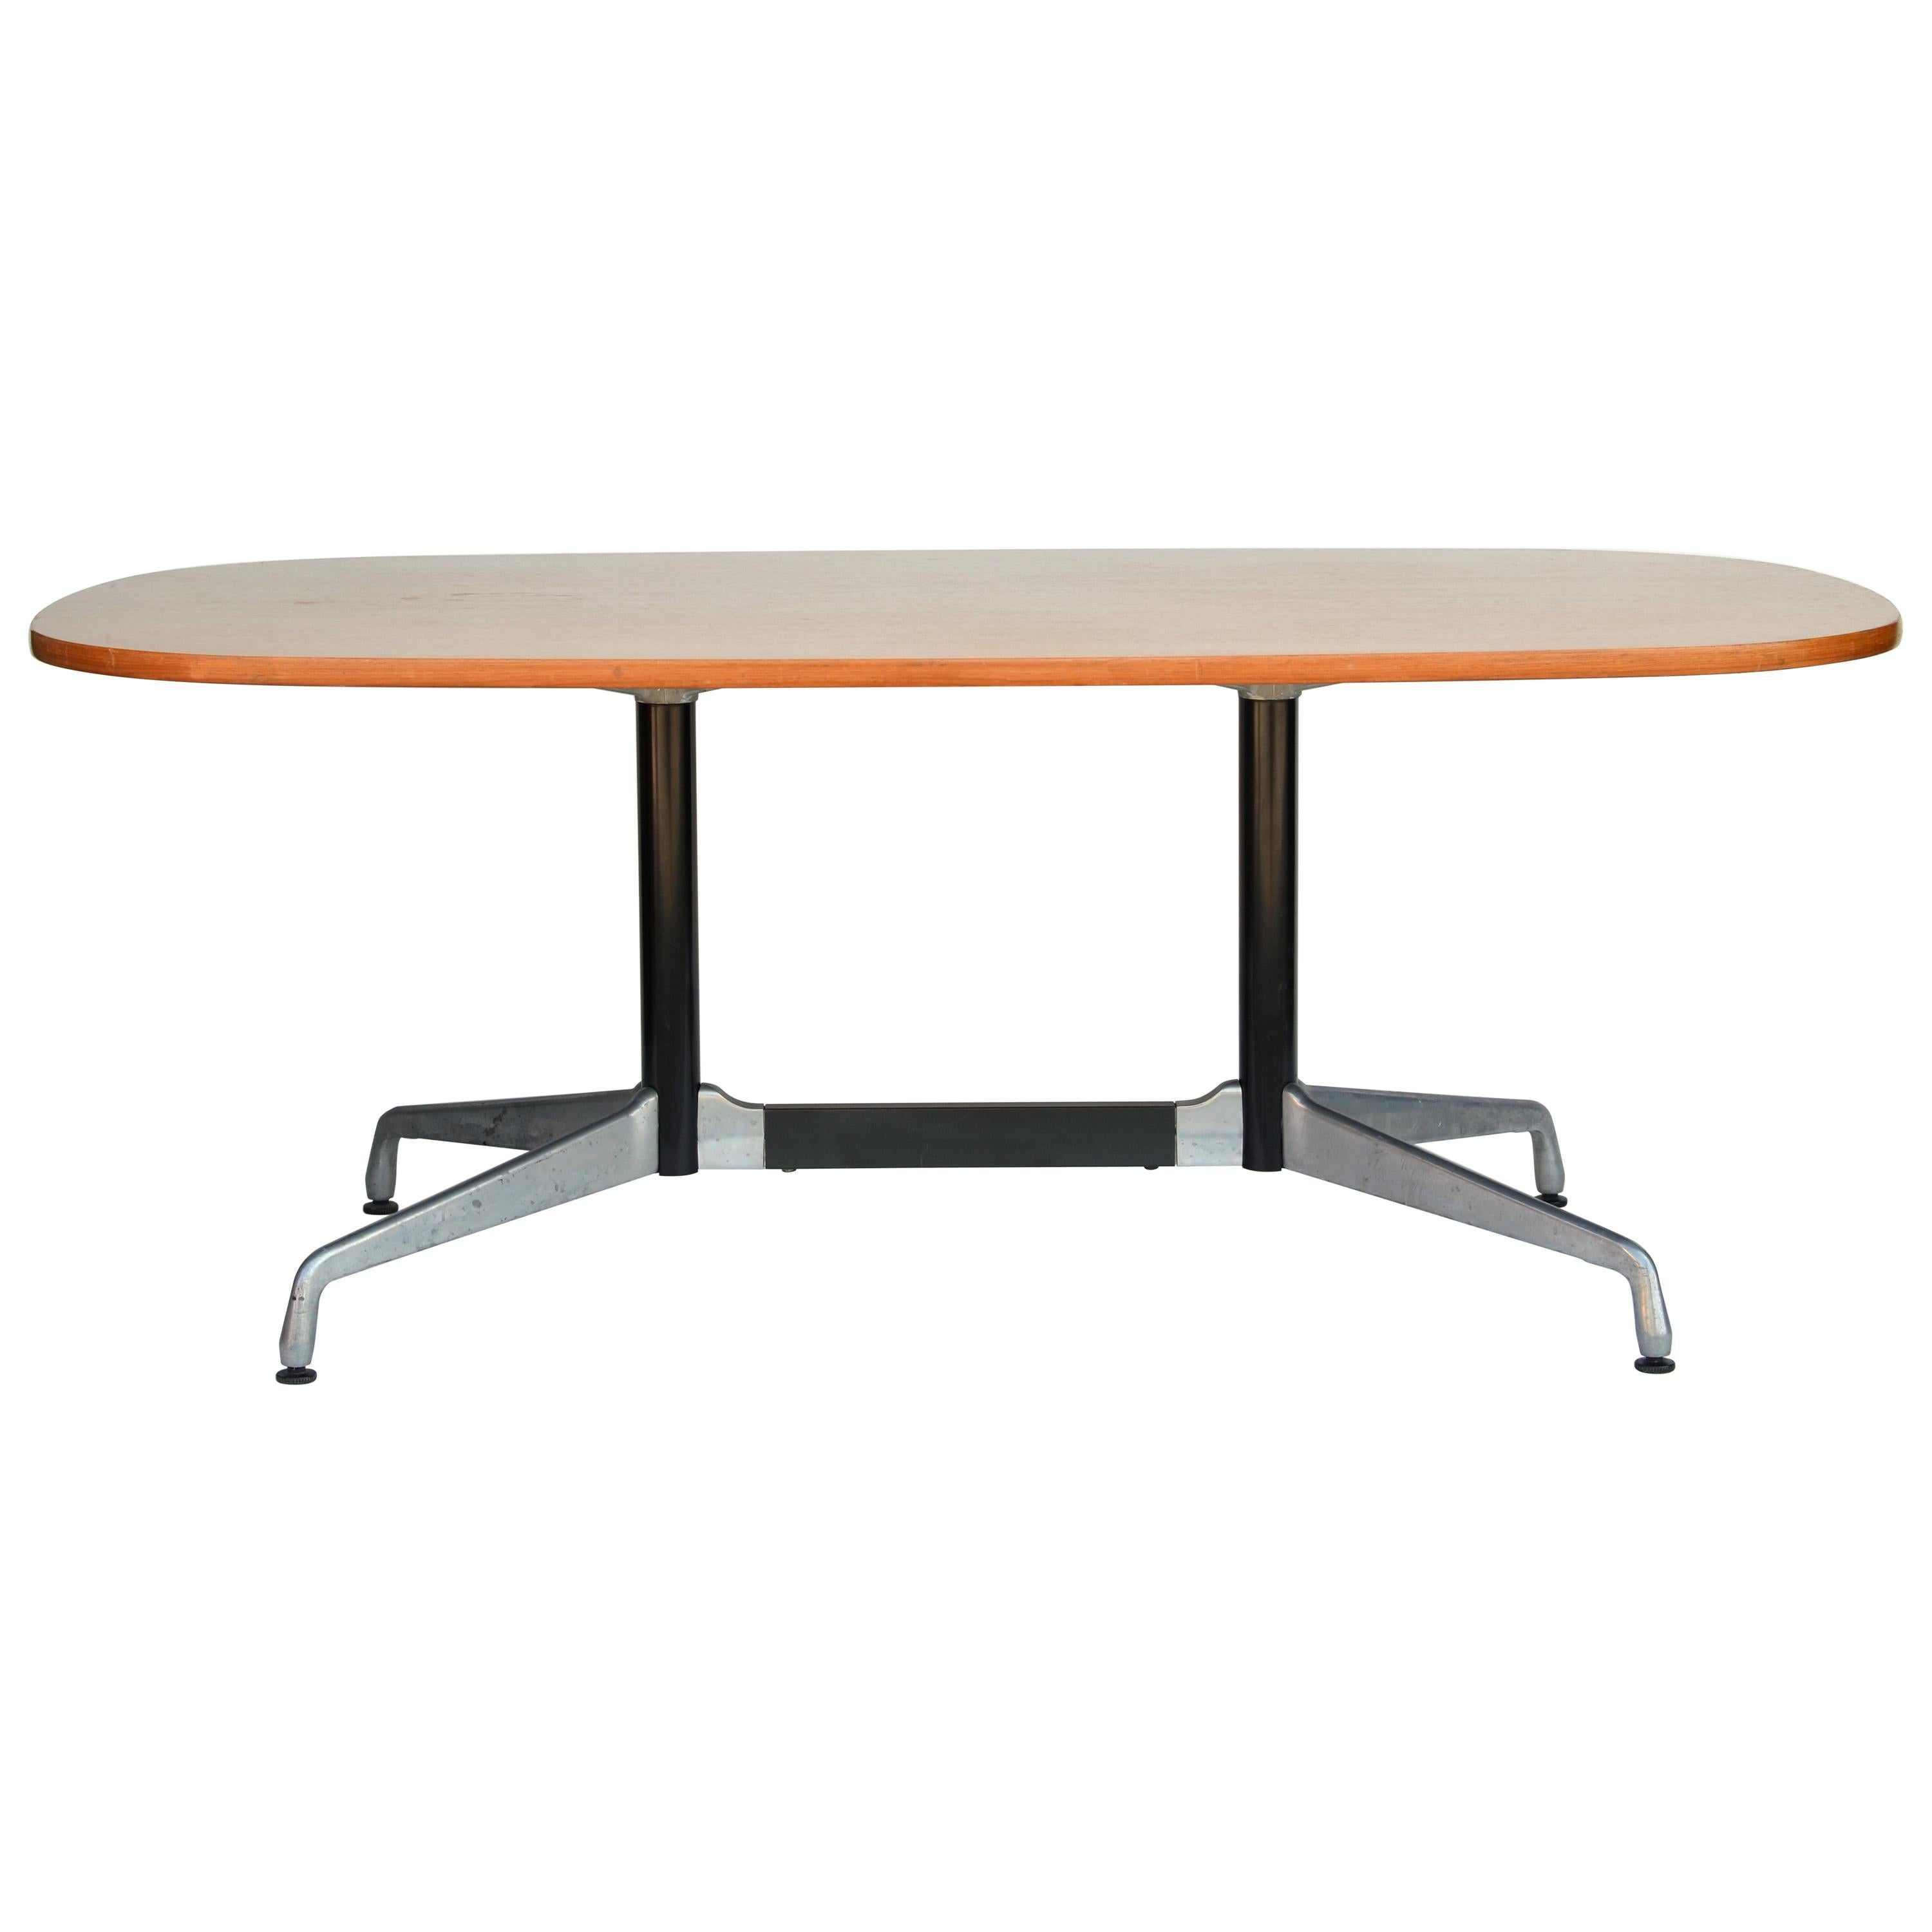 Beautiful Segmented Base and Bamboo Top Table by Eames for Herman Miller